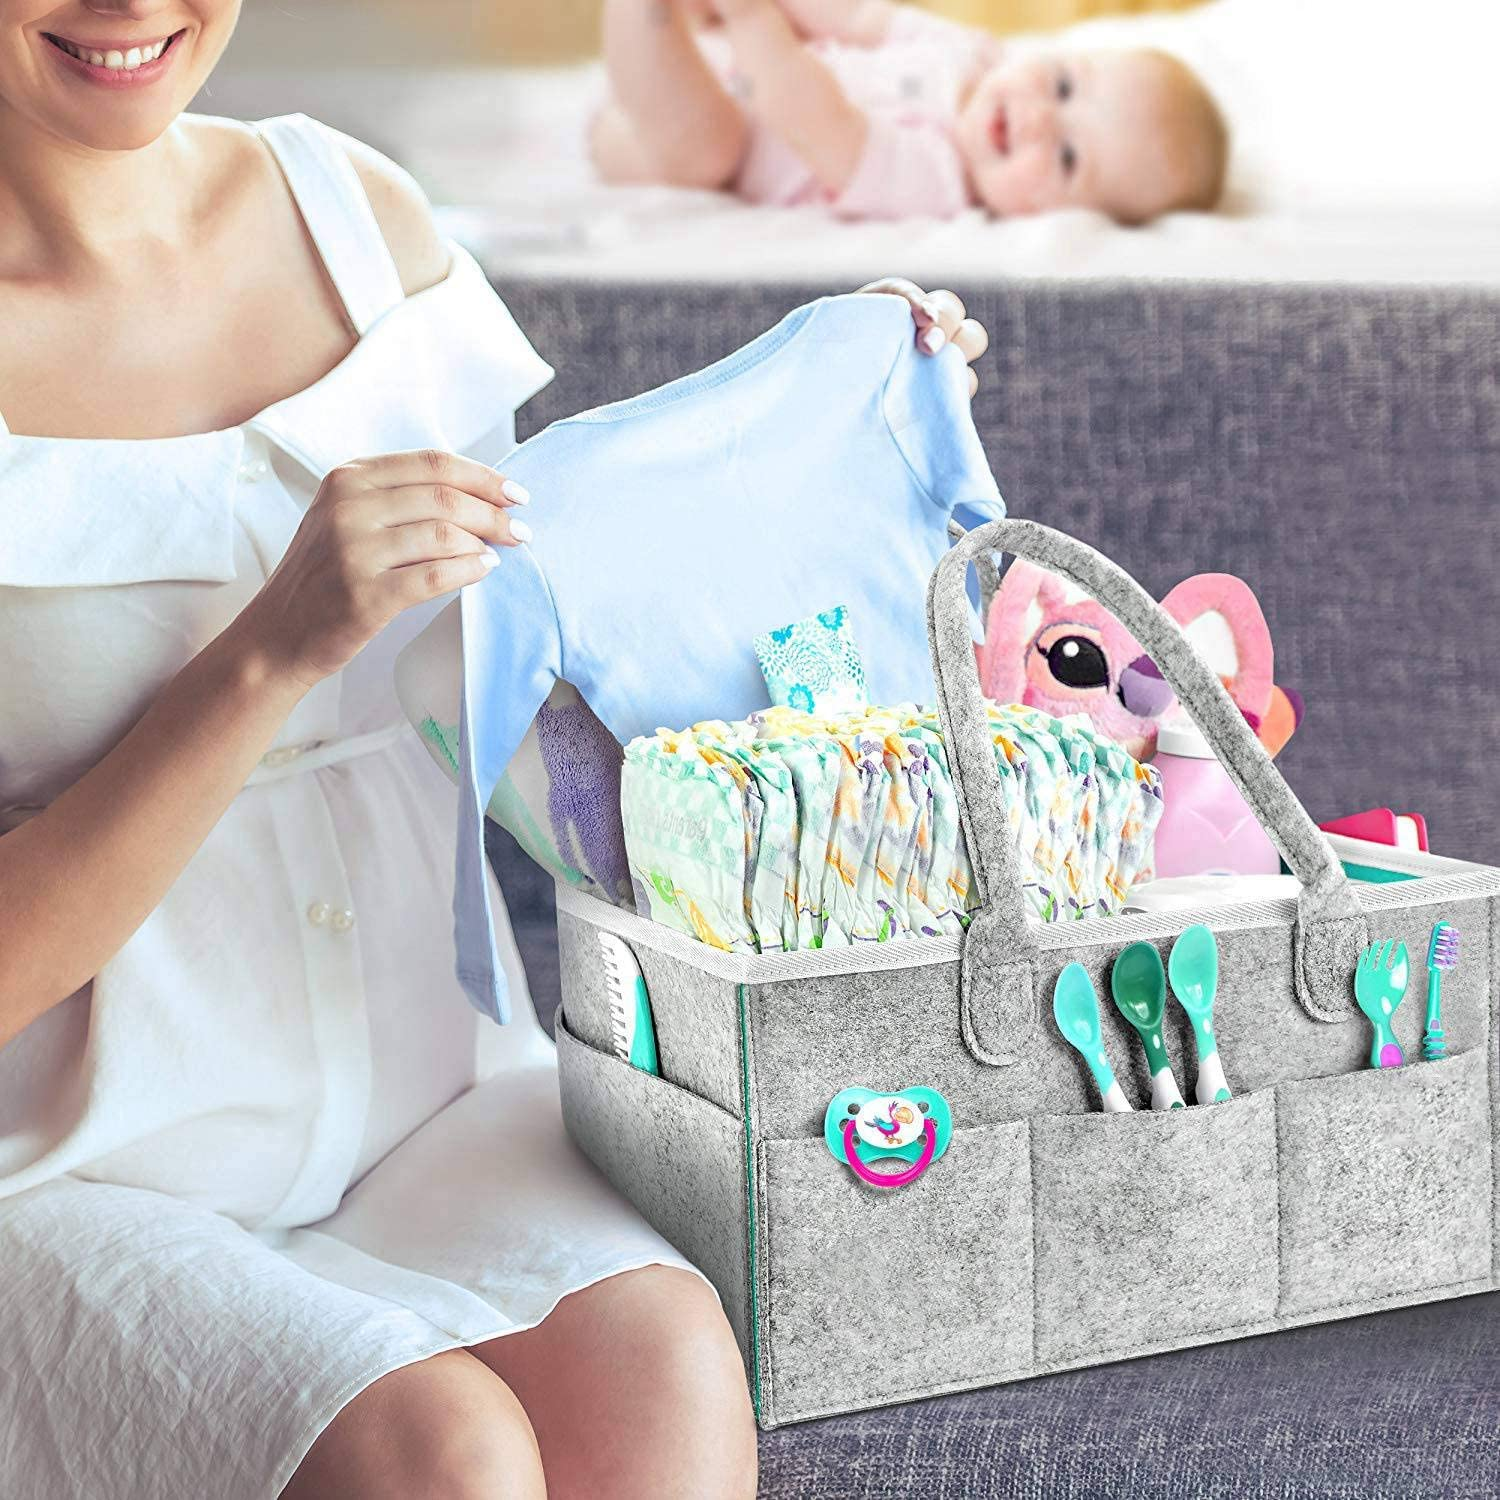 Nursery Essentials Storage Bins Monland Portable Large Diaper Caddy Tote Baby Diaper Caddy Organizer Portable Holder Bag For Changing Table And Car